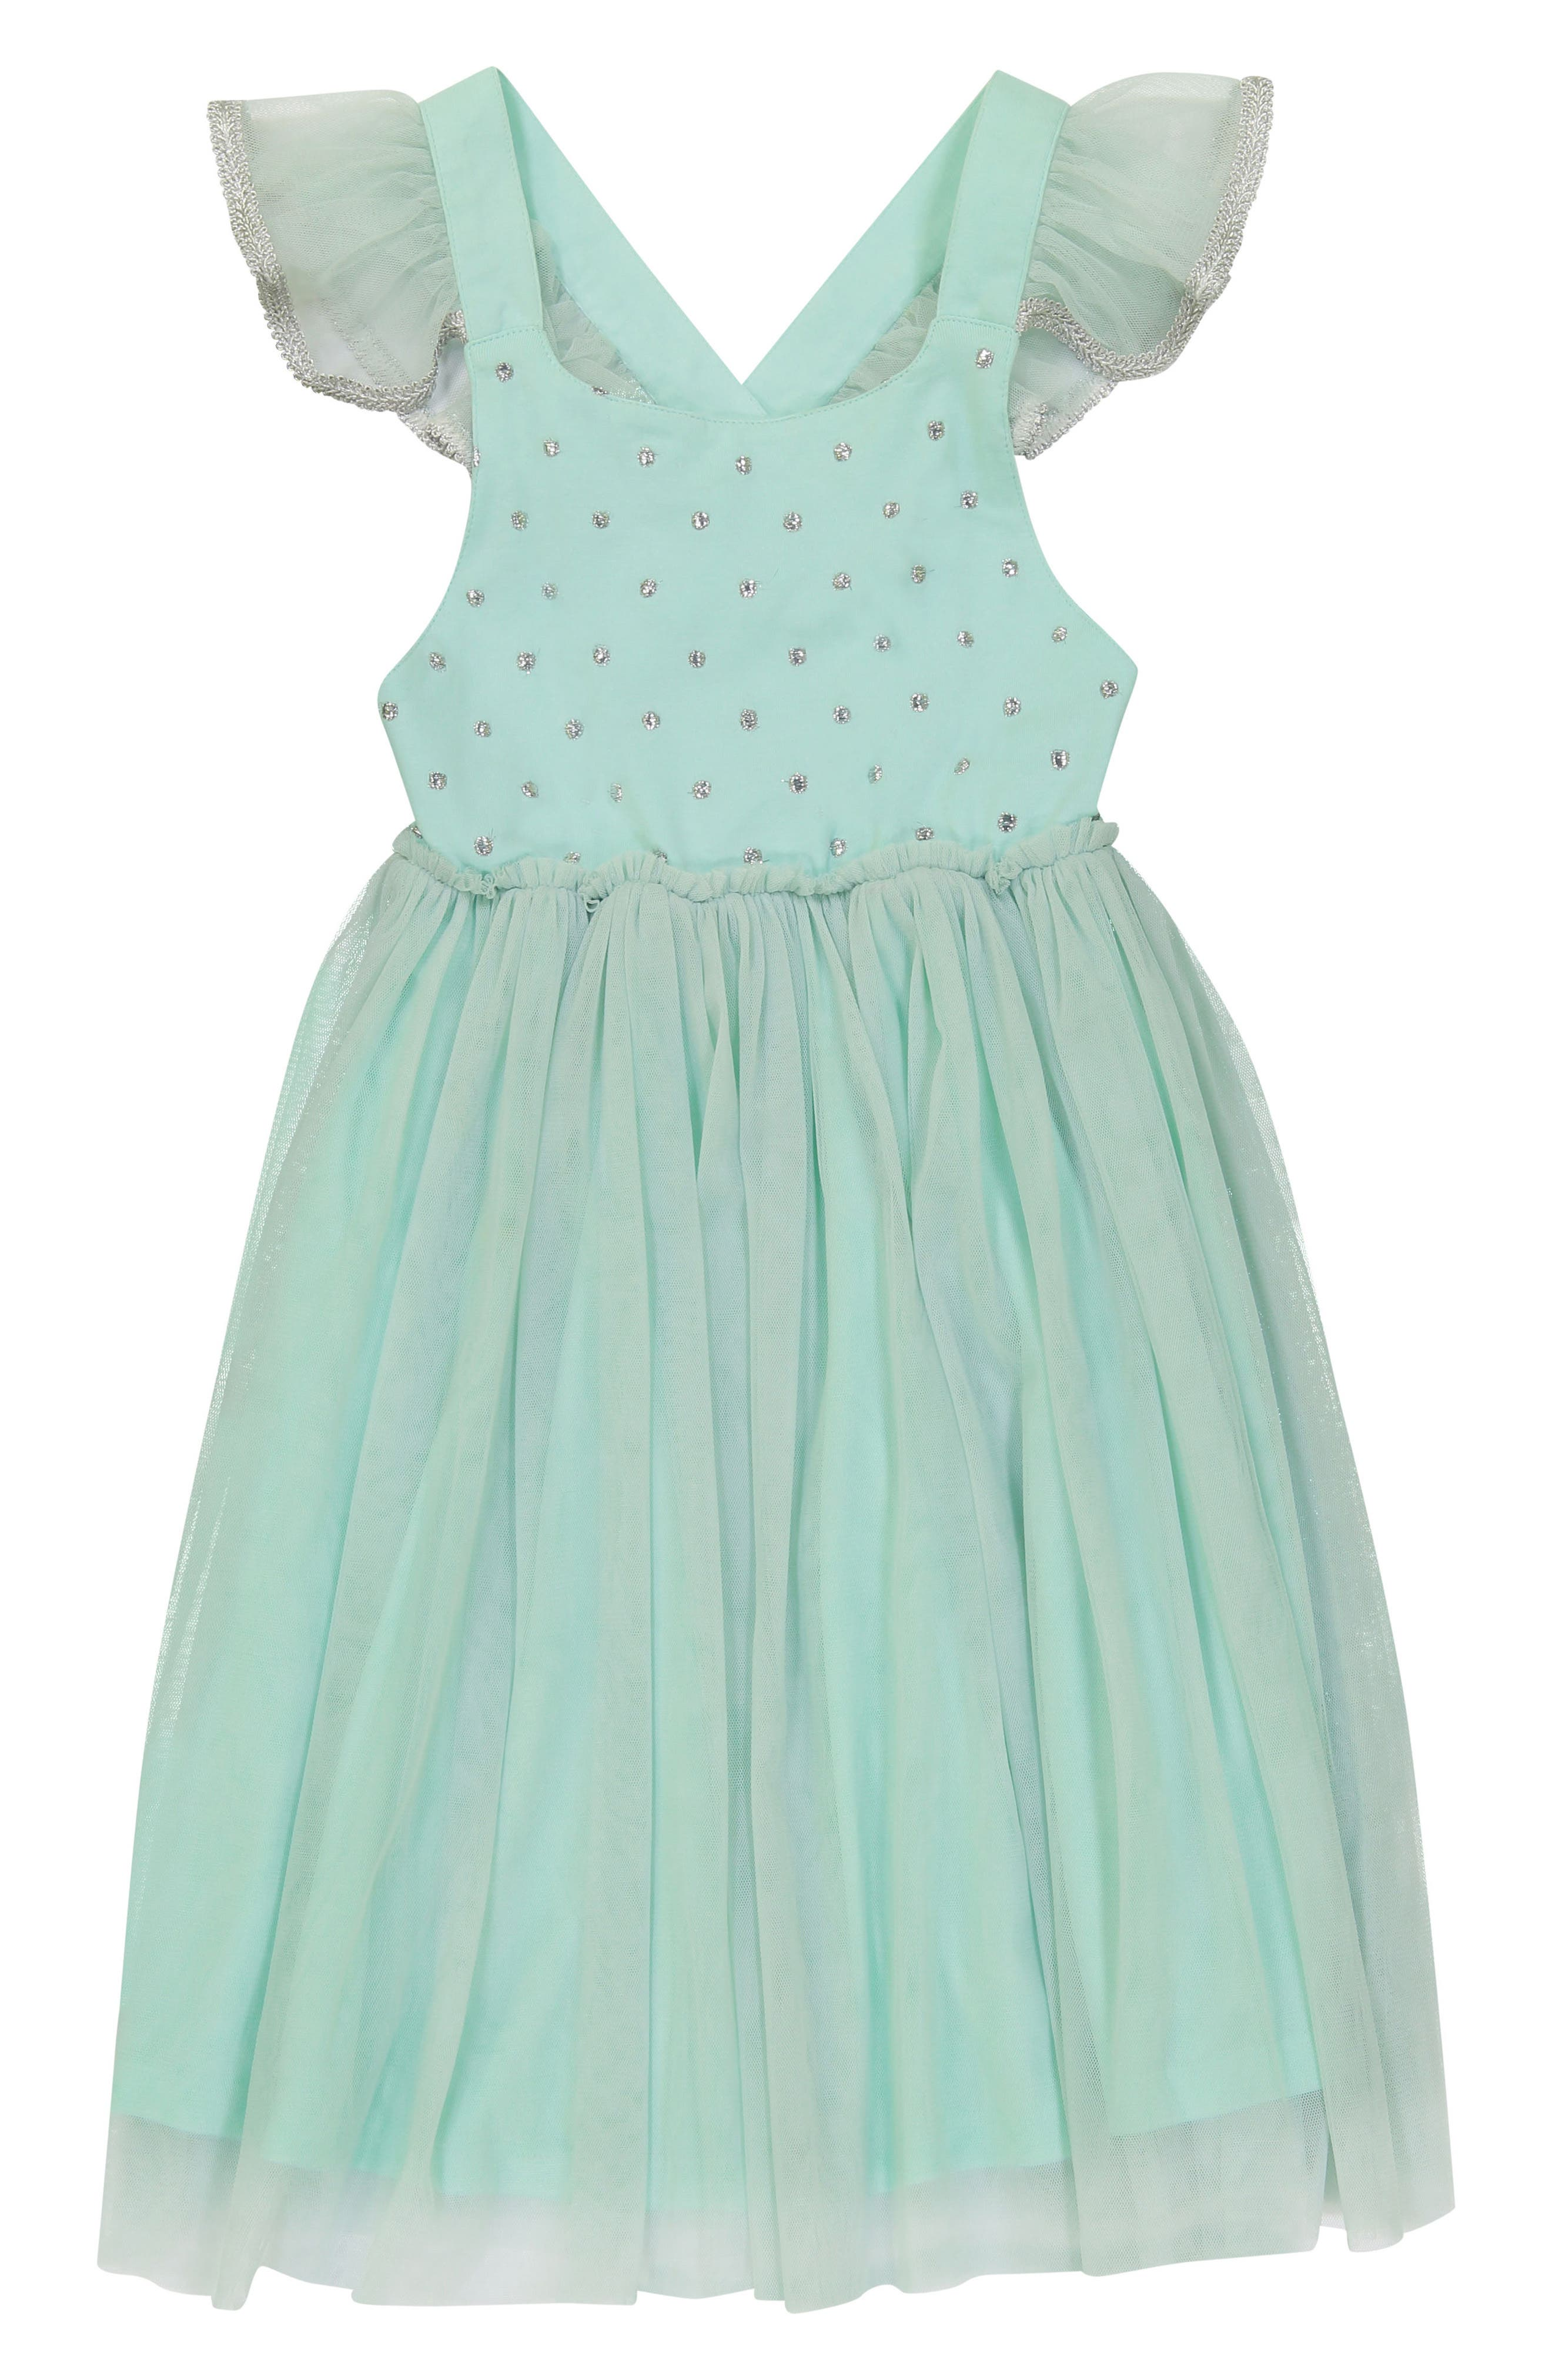 Diya Tulle Sundress,                         Main,                         color, Turquoise